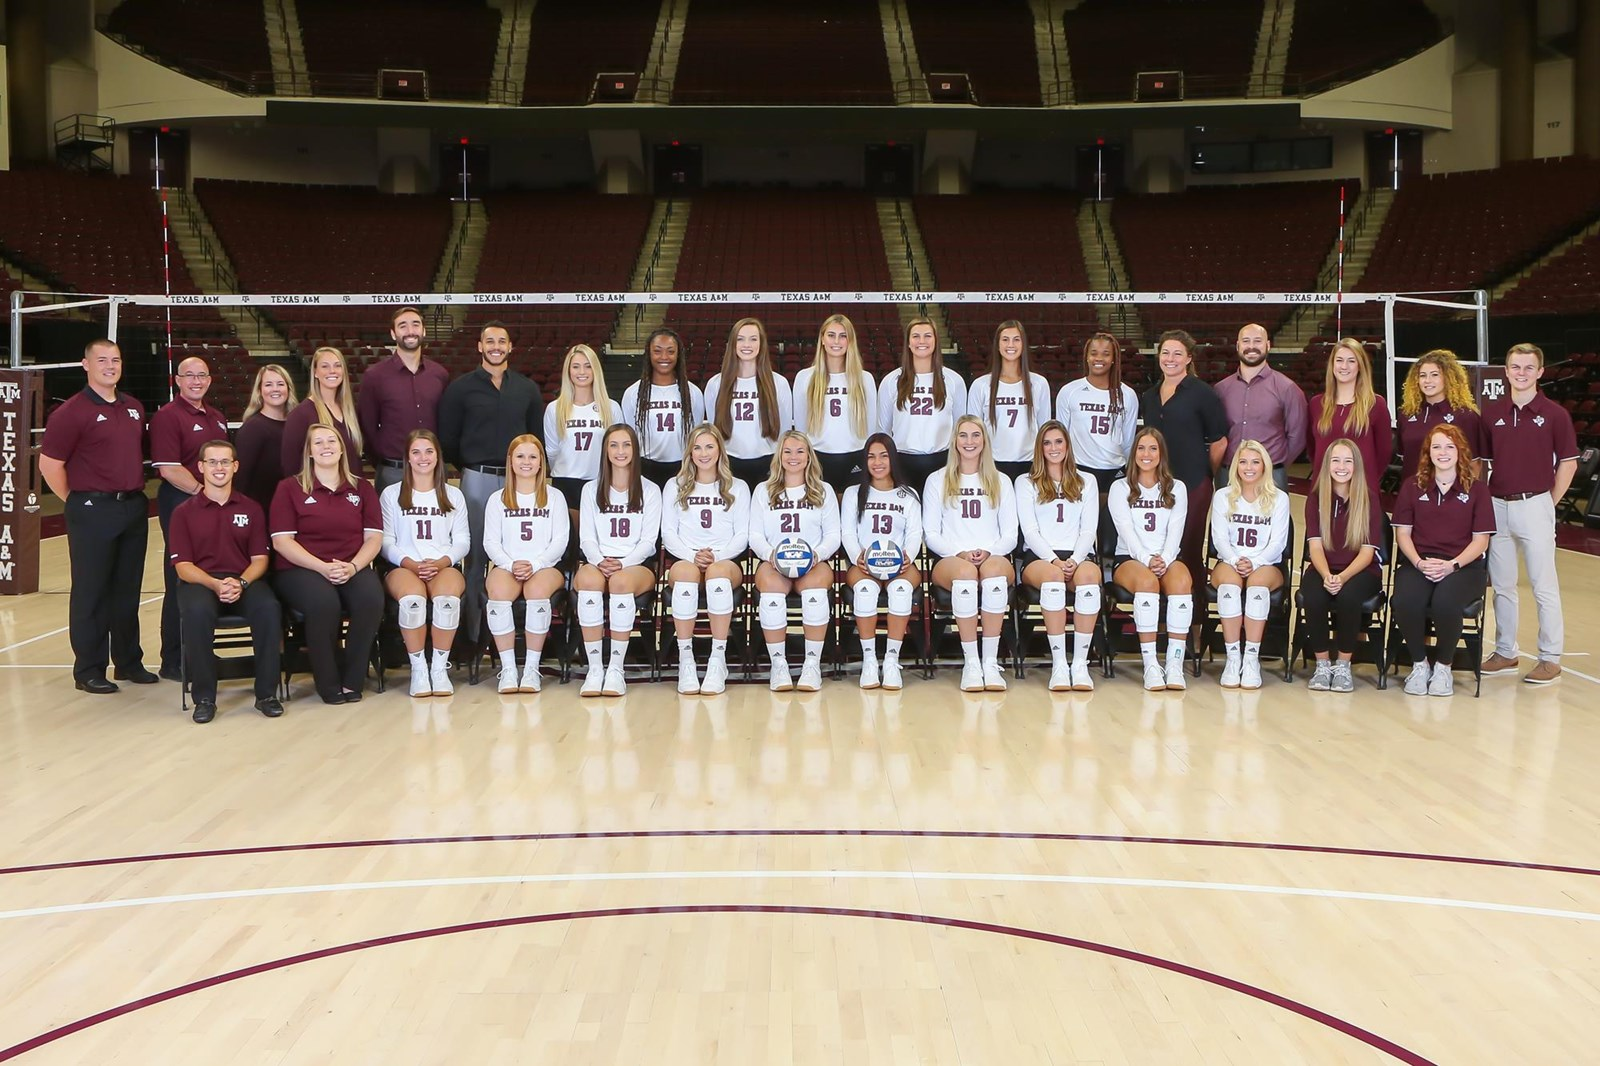 2019 Volleyball Roster Texas A M Athletics Home Of The 12th Man